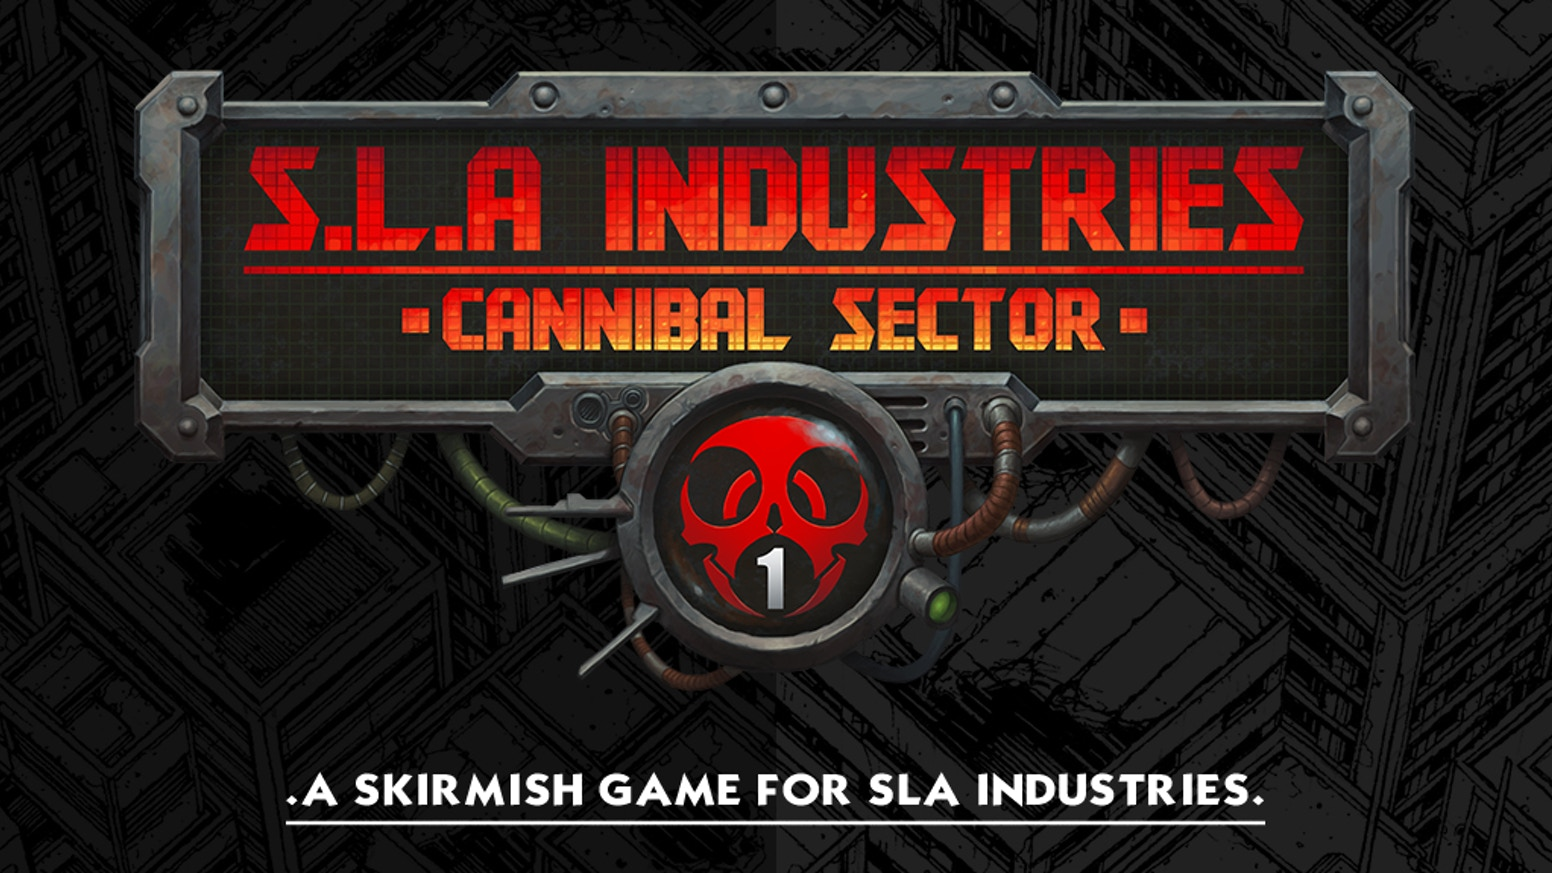 A new miniature game and RPG content for SLA Industries: Cannibal Sector 1.